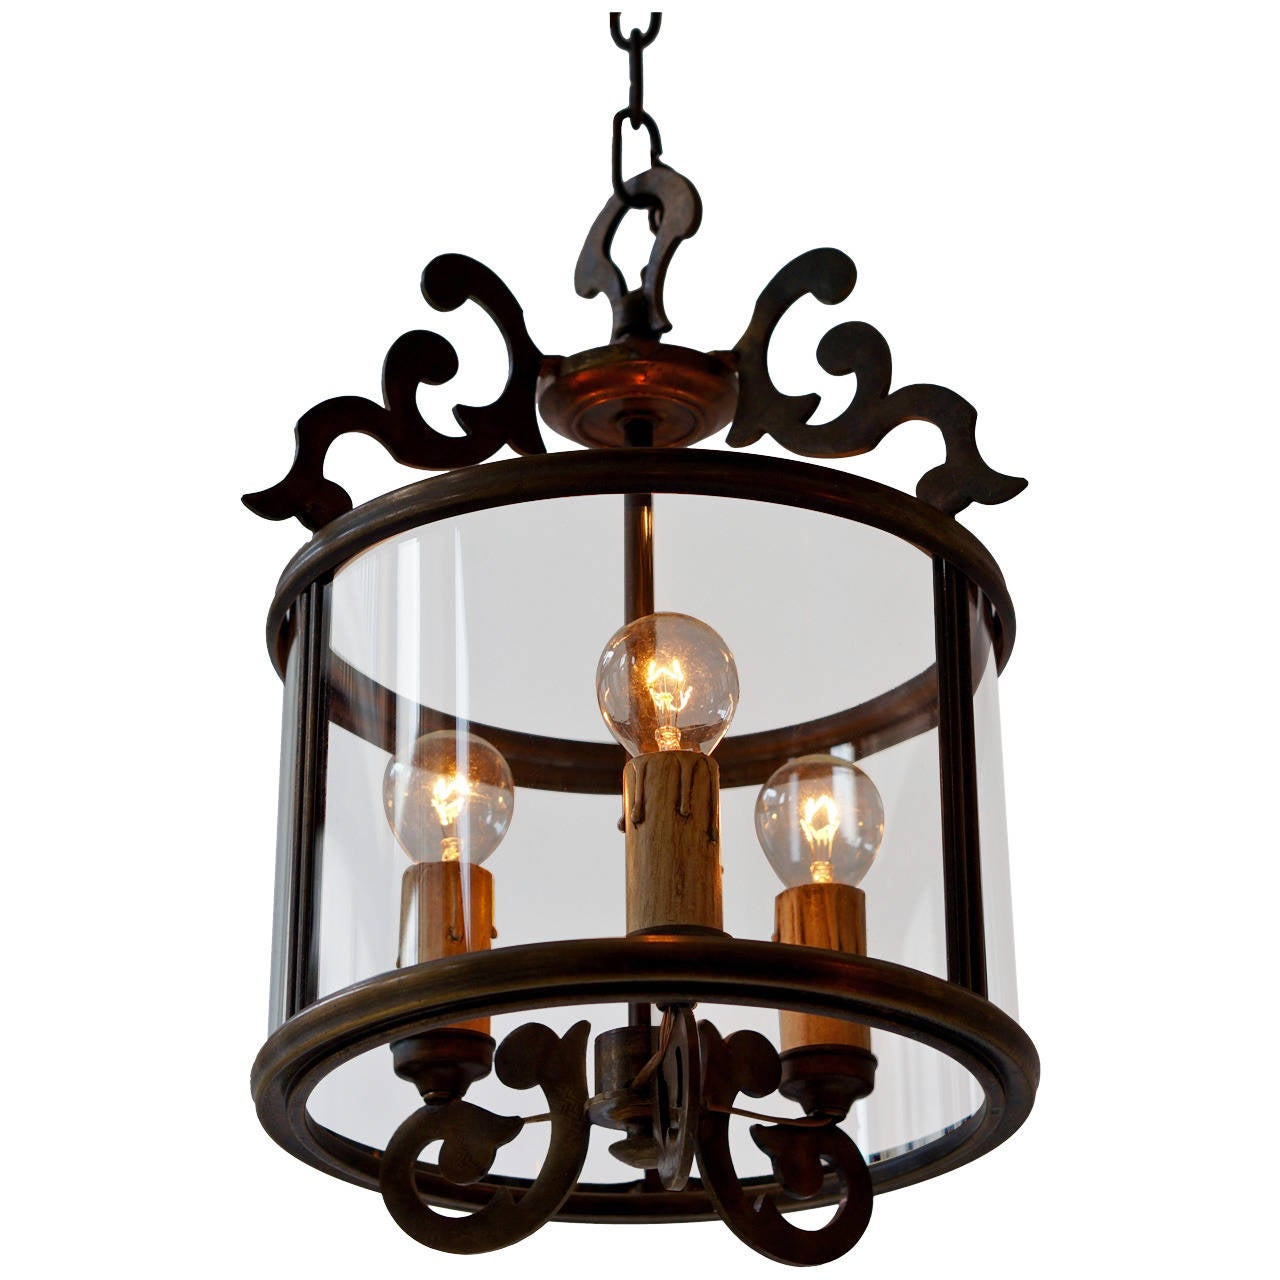 Three Italian Brass Hall Lantern Pendant Lights By Sciolari For Sale